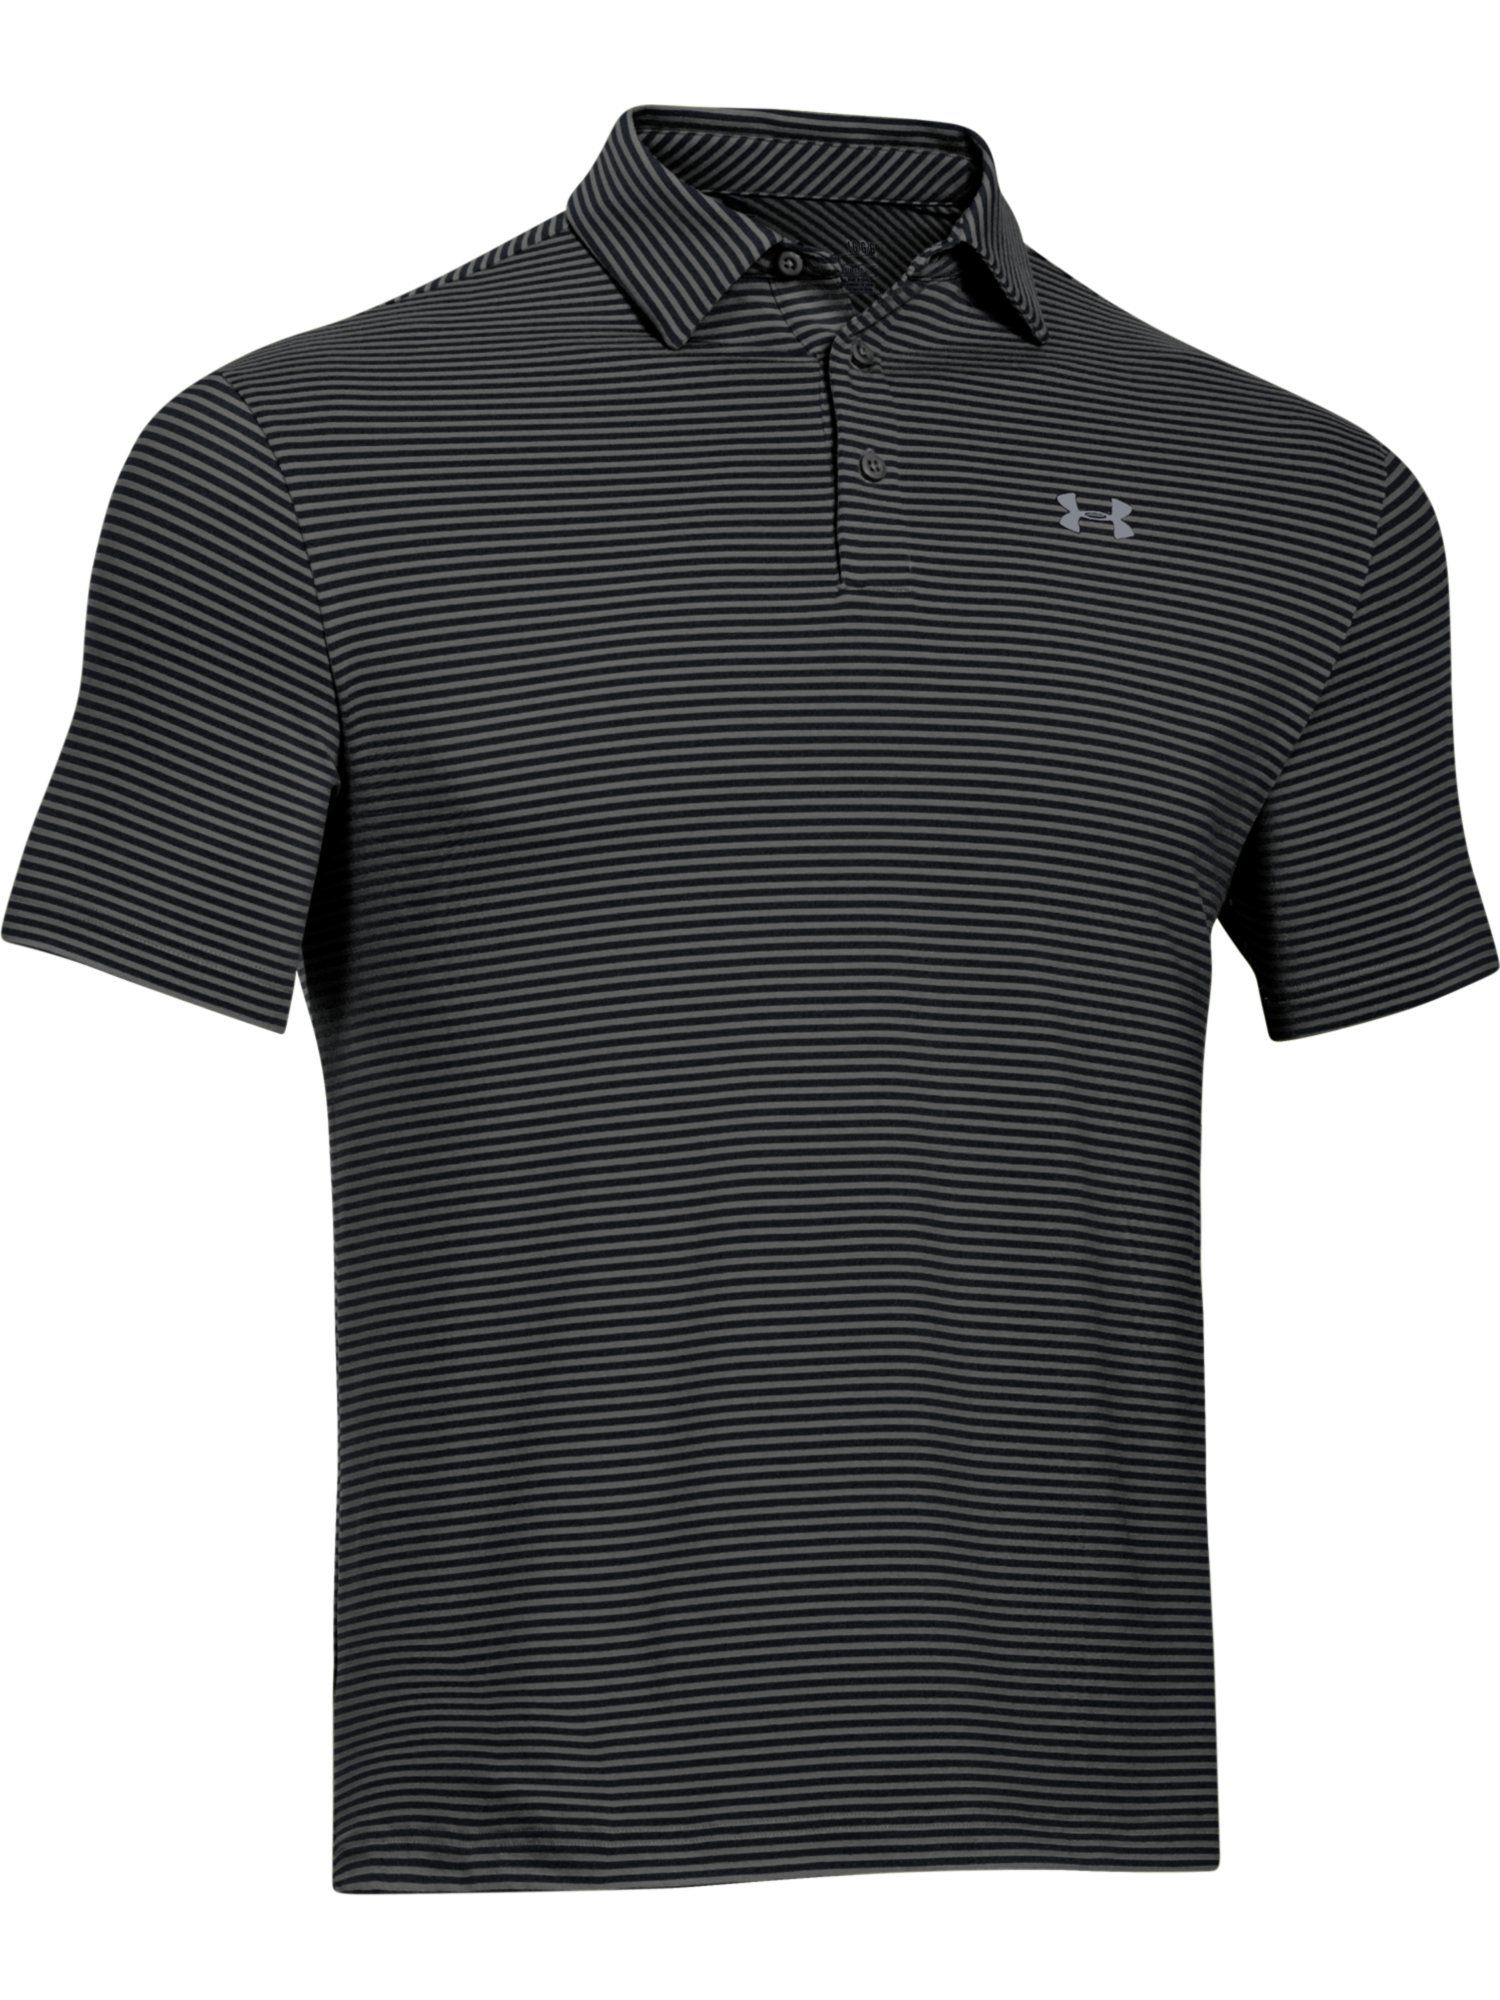 Elevated heather stripe polo